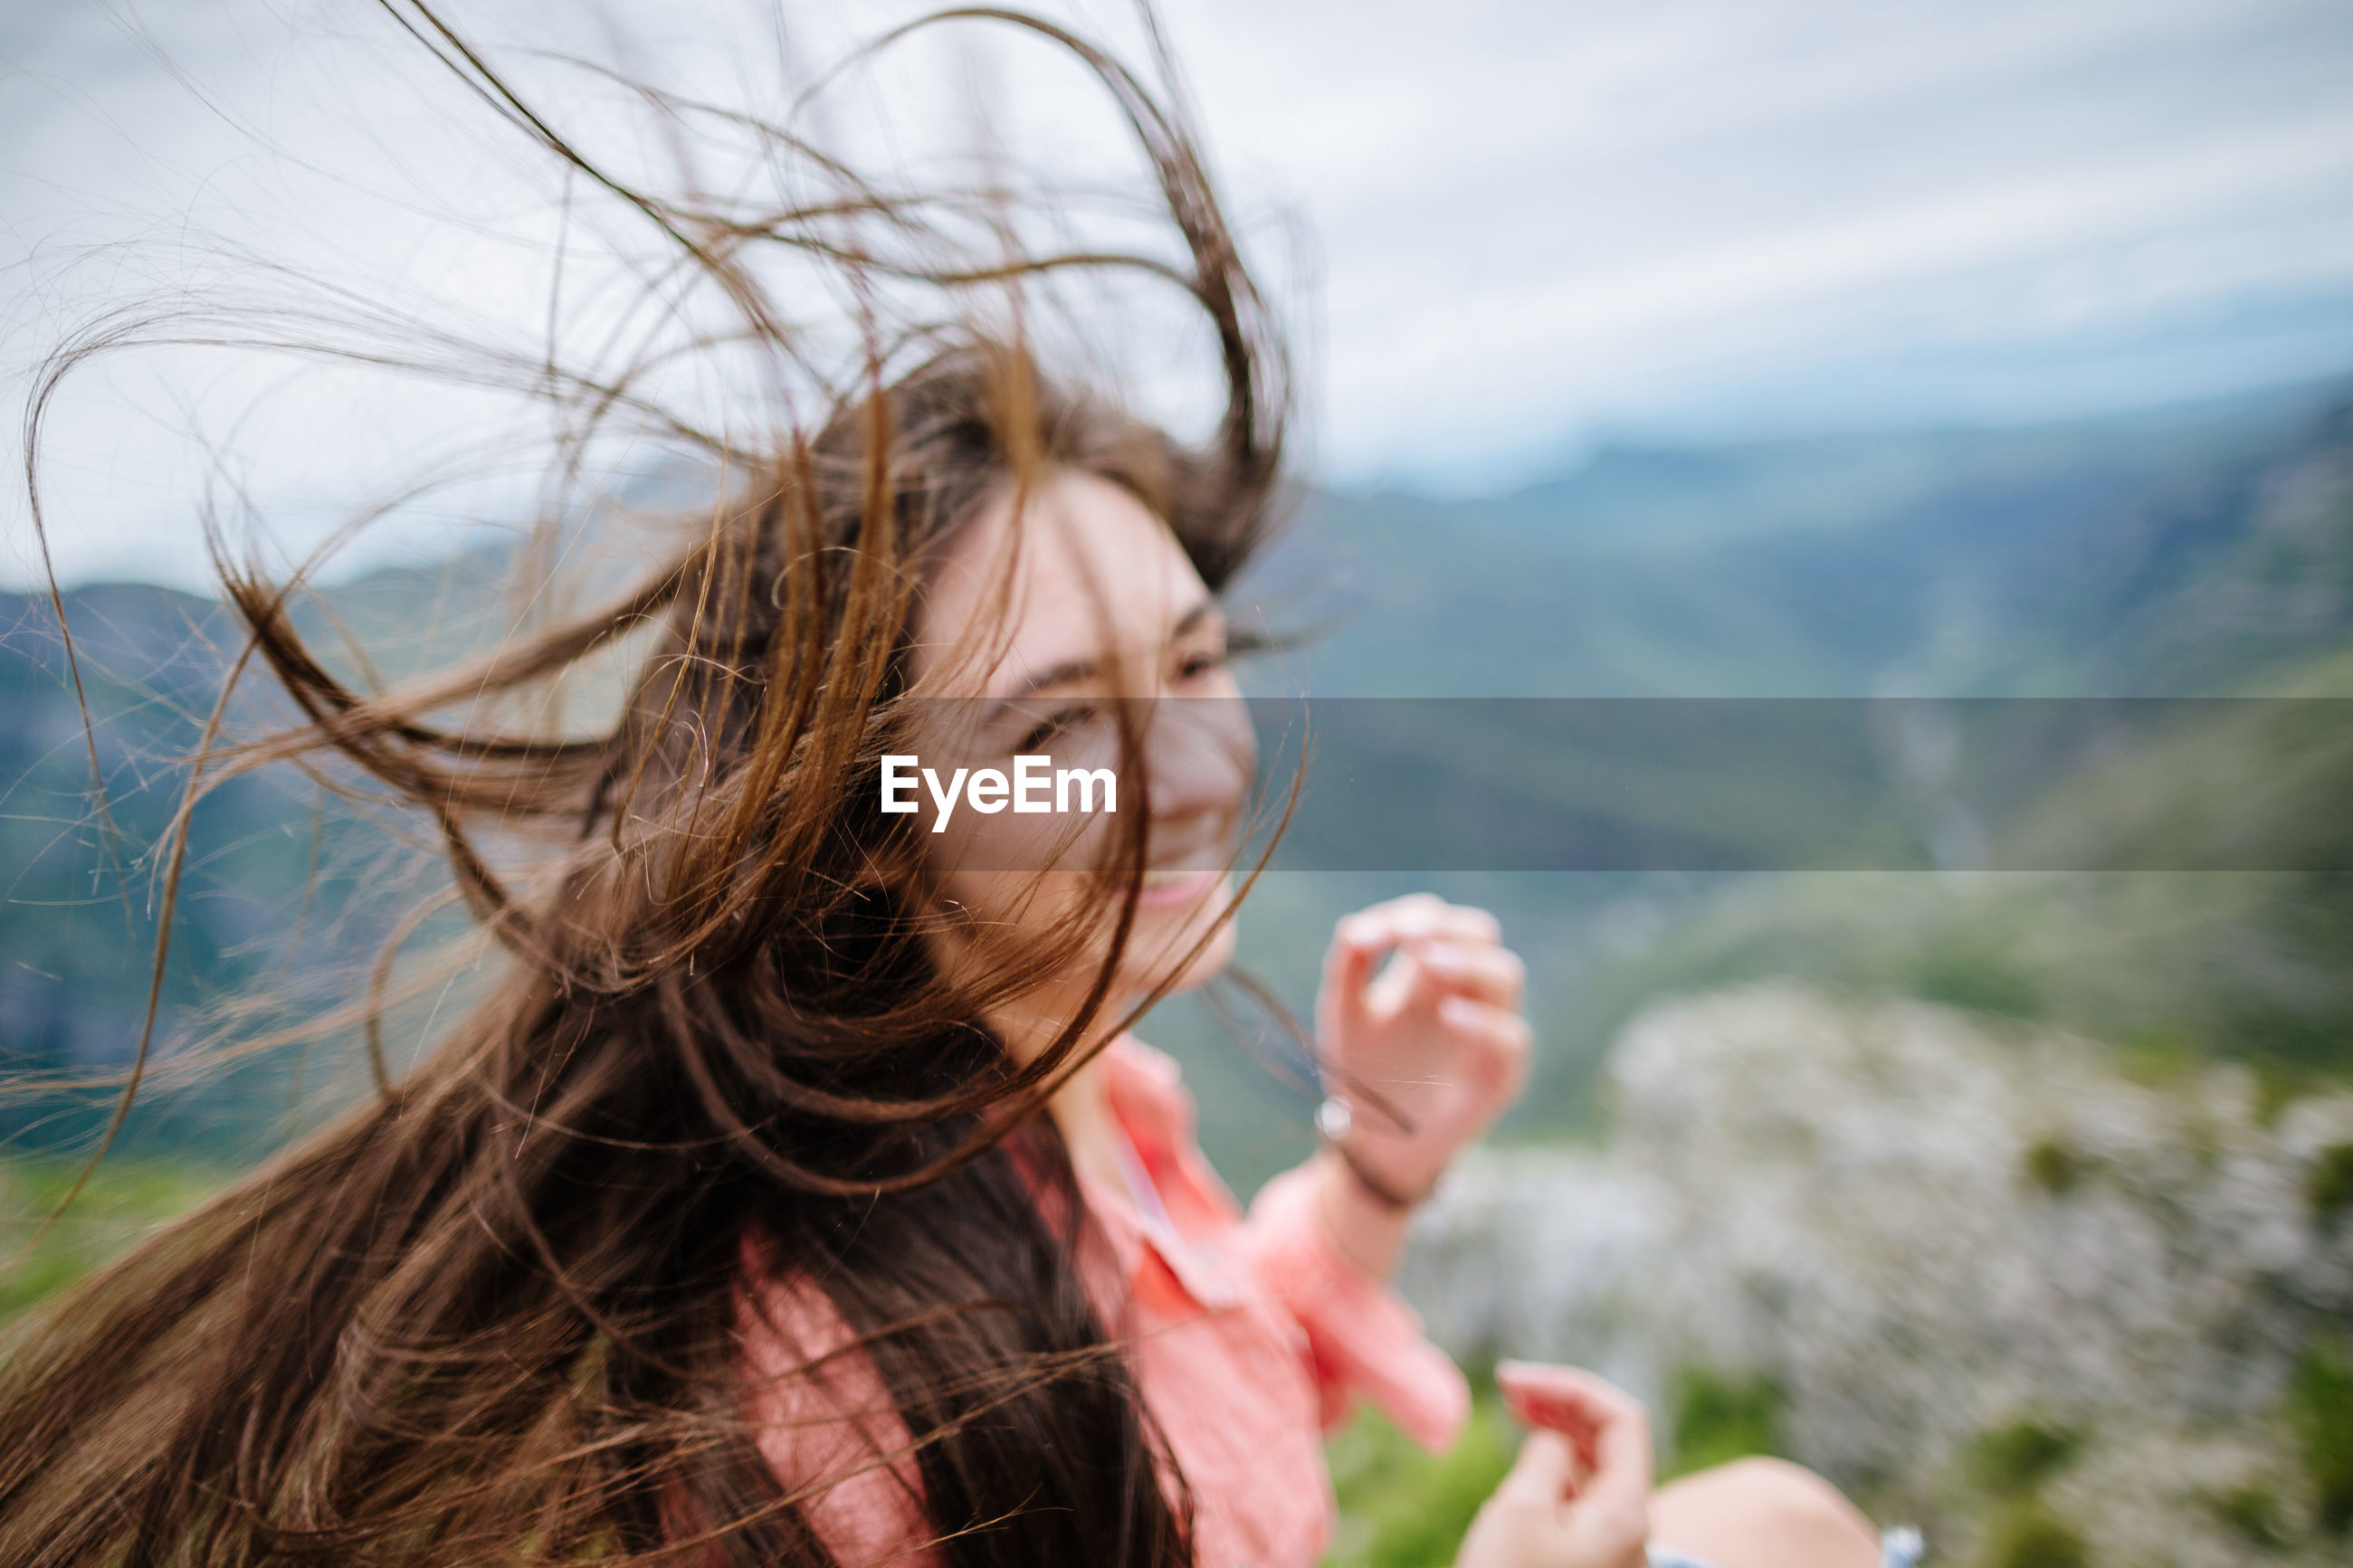 Close-up of young woman in wind